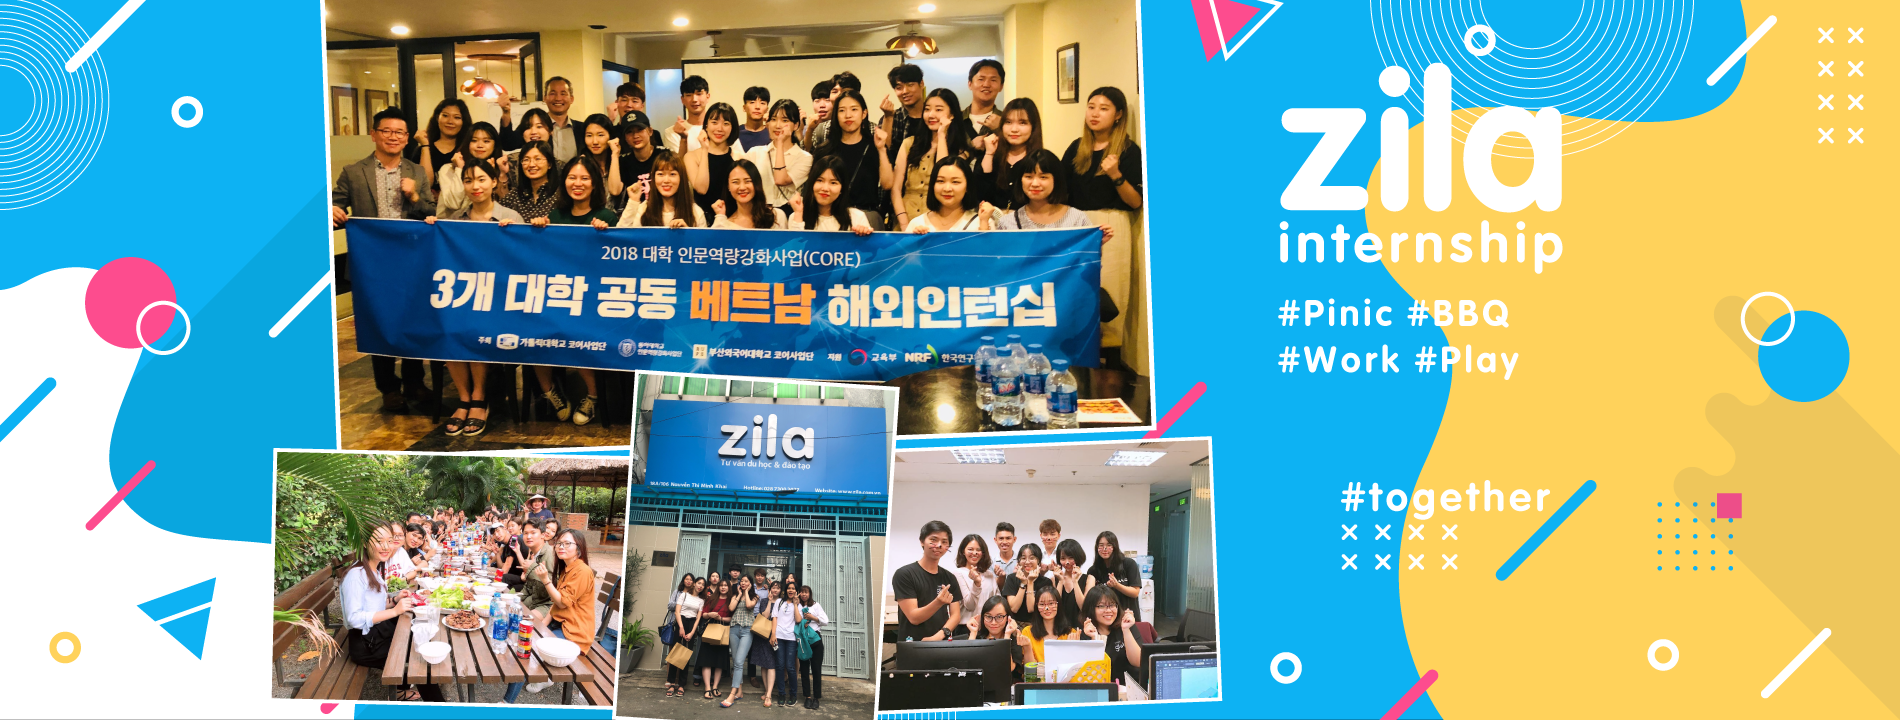 zila-internship-korean